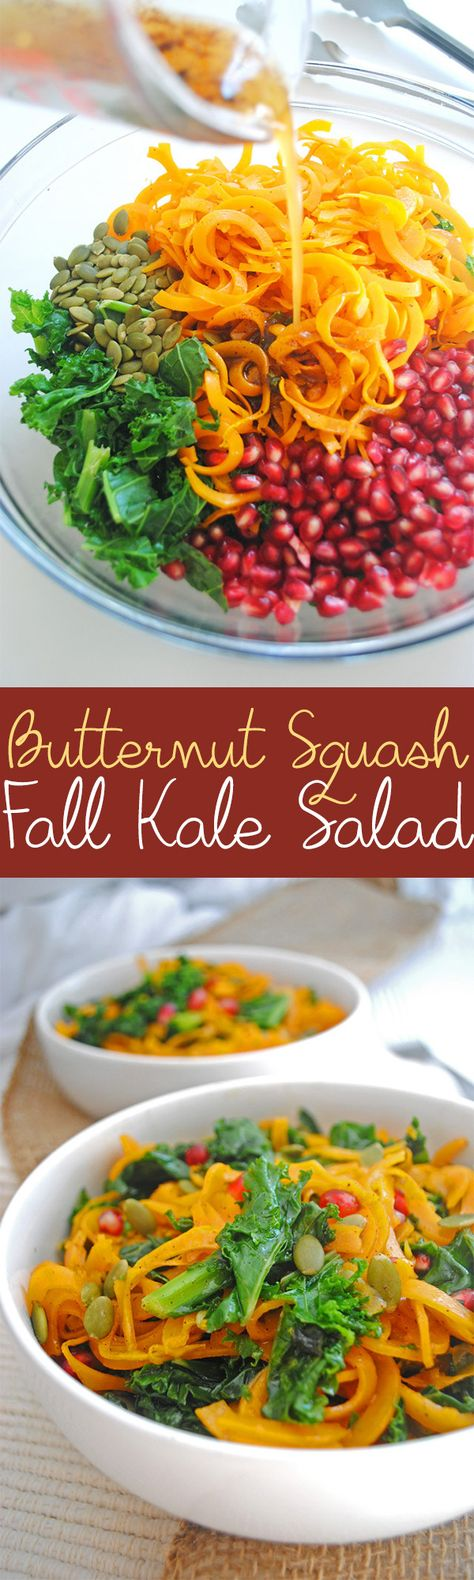 This fall kale salad is bursting with roasted butternut squash, juicy pomegranate seeds, and crunchy pumpkin seeds! It's perfect for holiday dinners.